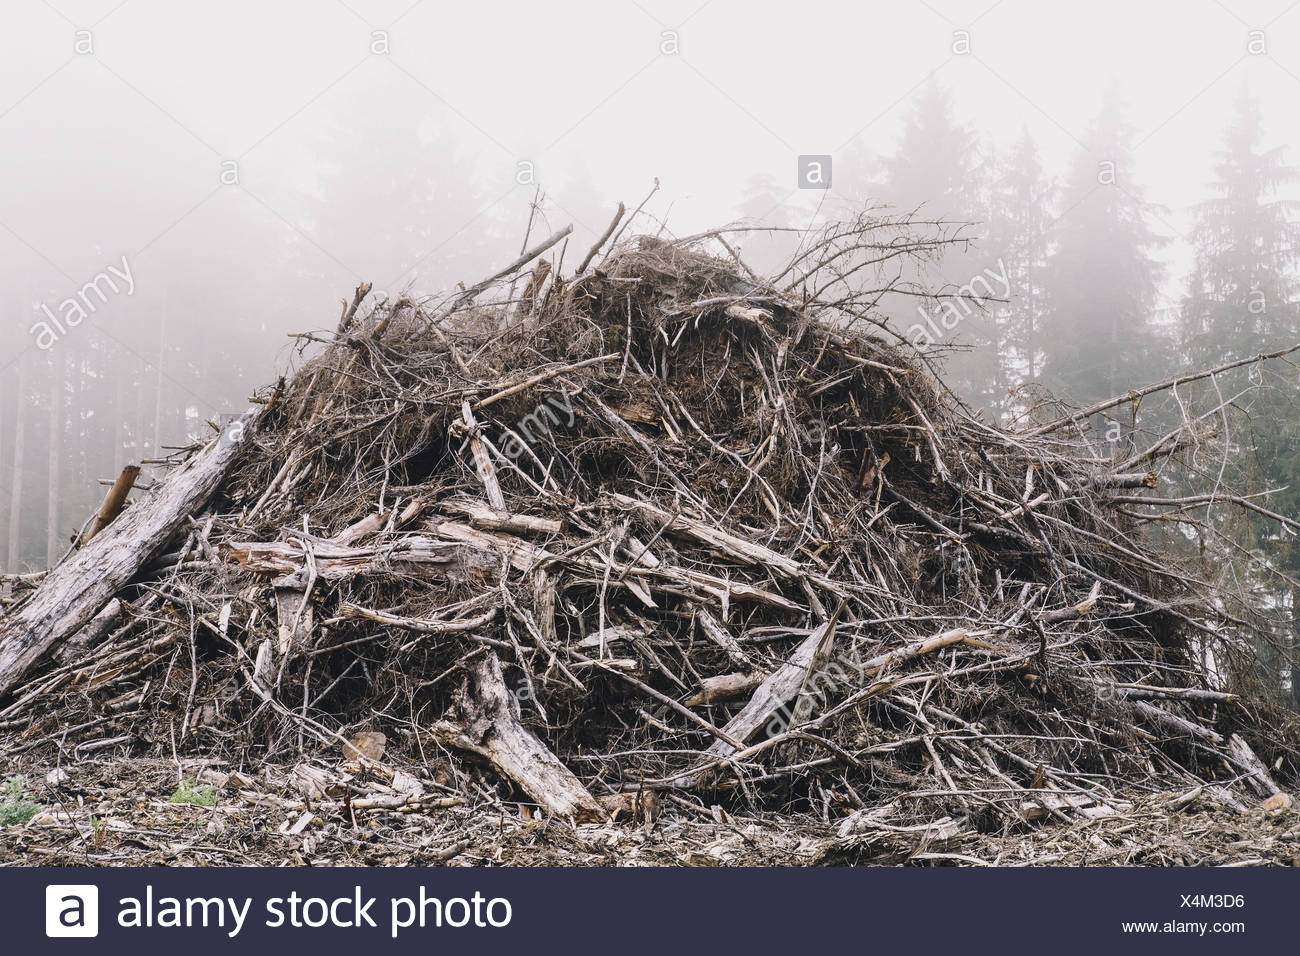 Pile of wood debris from clear cut logging Mist in the forest Calallam County Washington USA USA - Stock Image